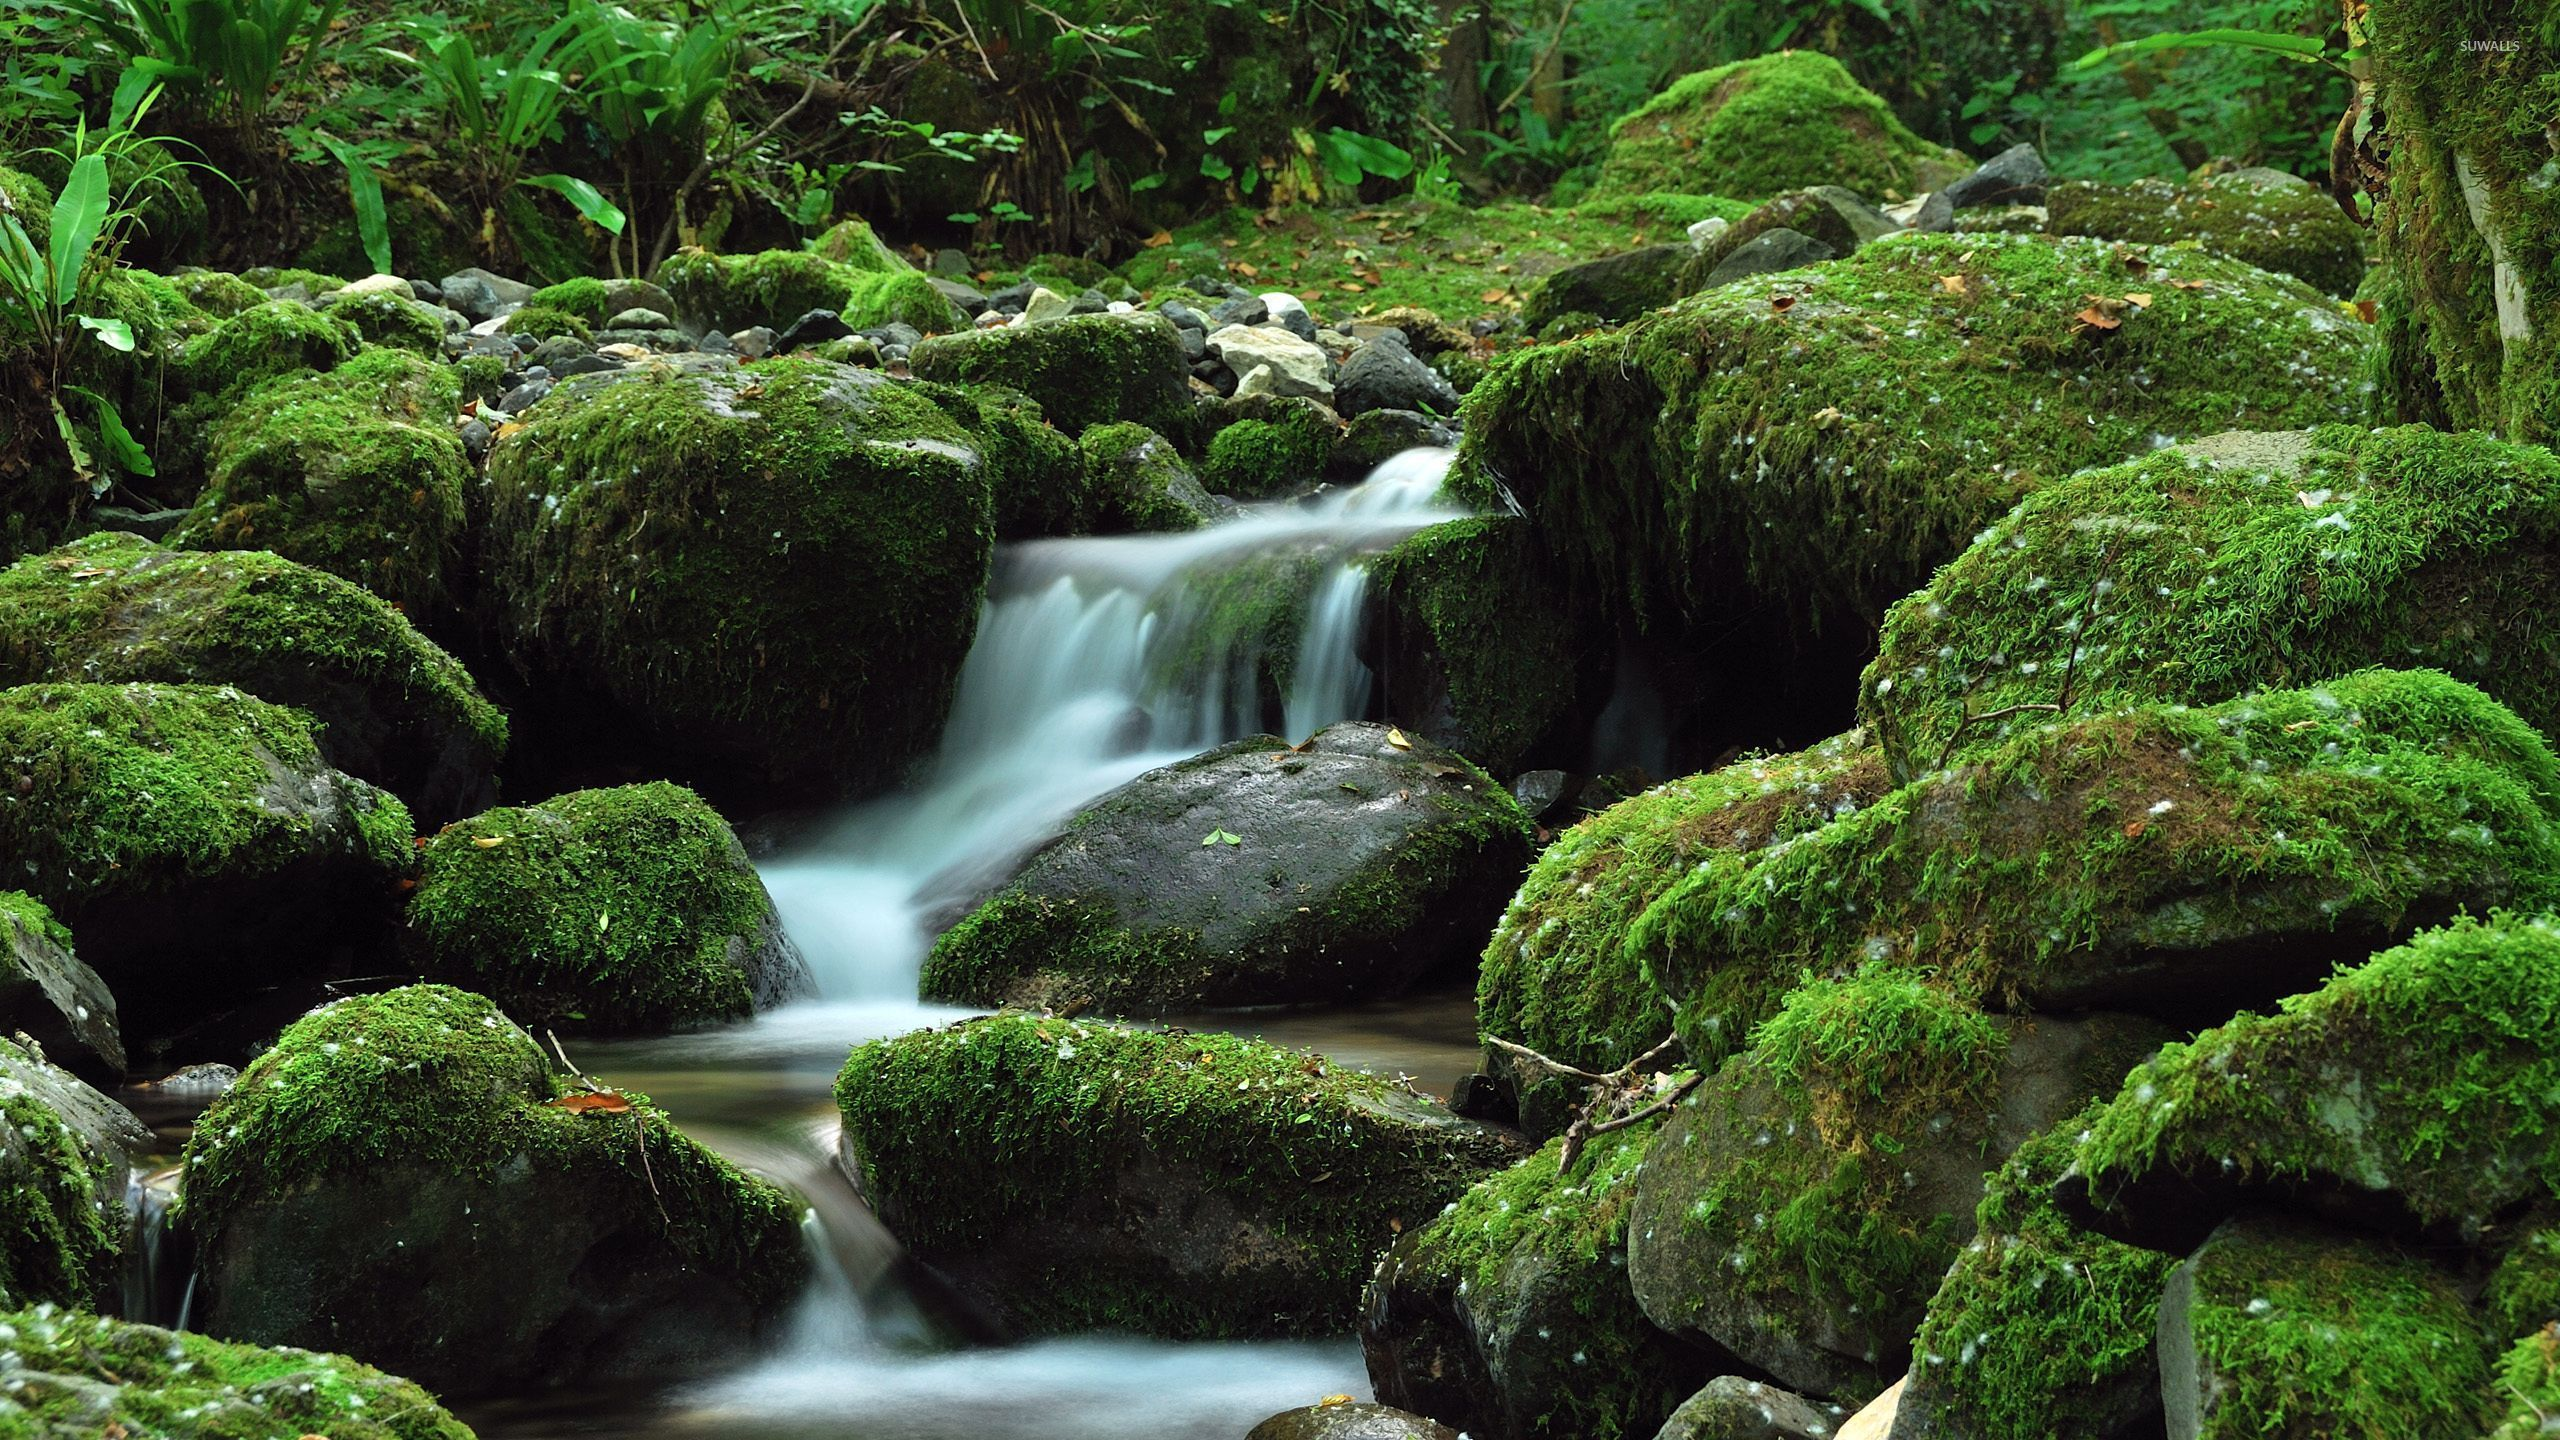 Snow Falling Wallpapers Free Download Water Falling Through The Mossy Rock Wallpaper Nature